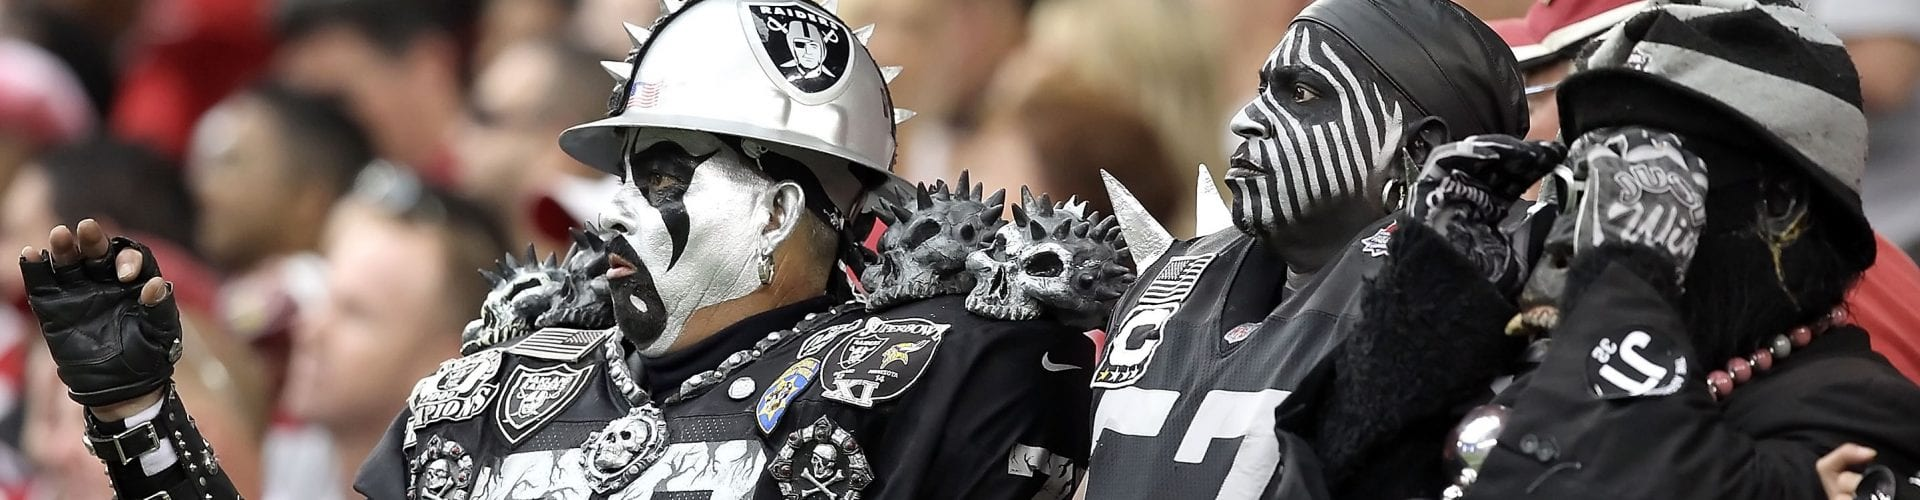 Raiders Season Ticket Holders In Limbo As Team Searches For Stadium